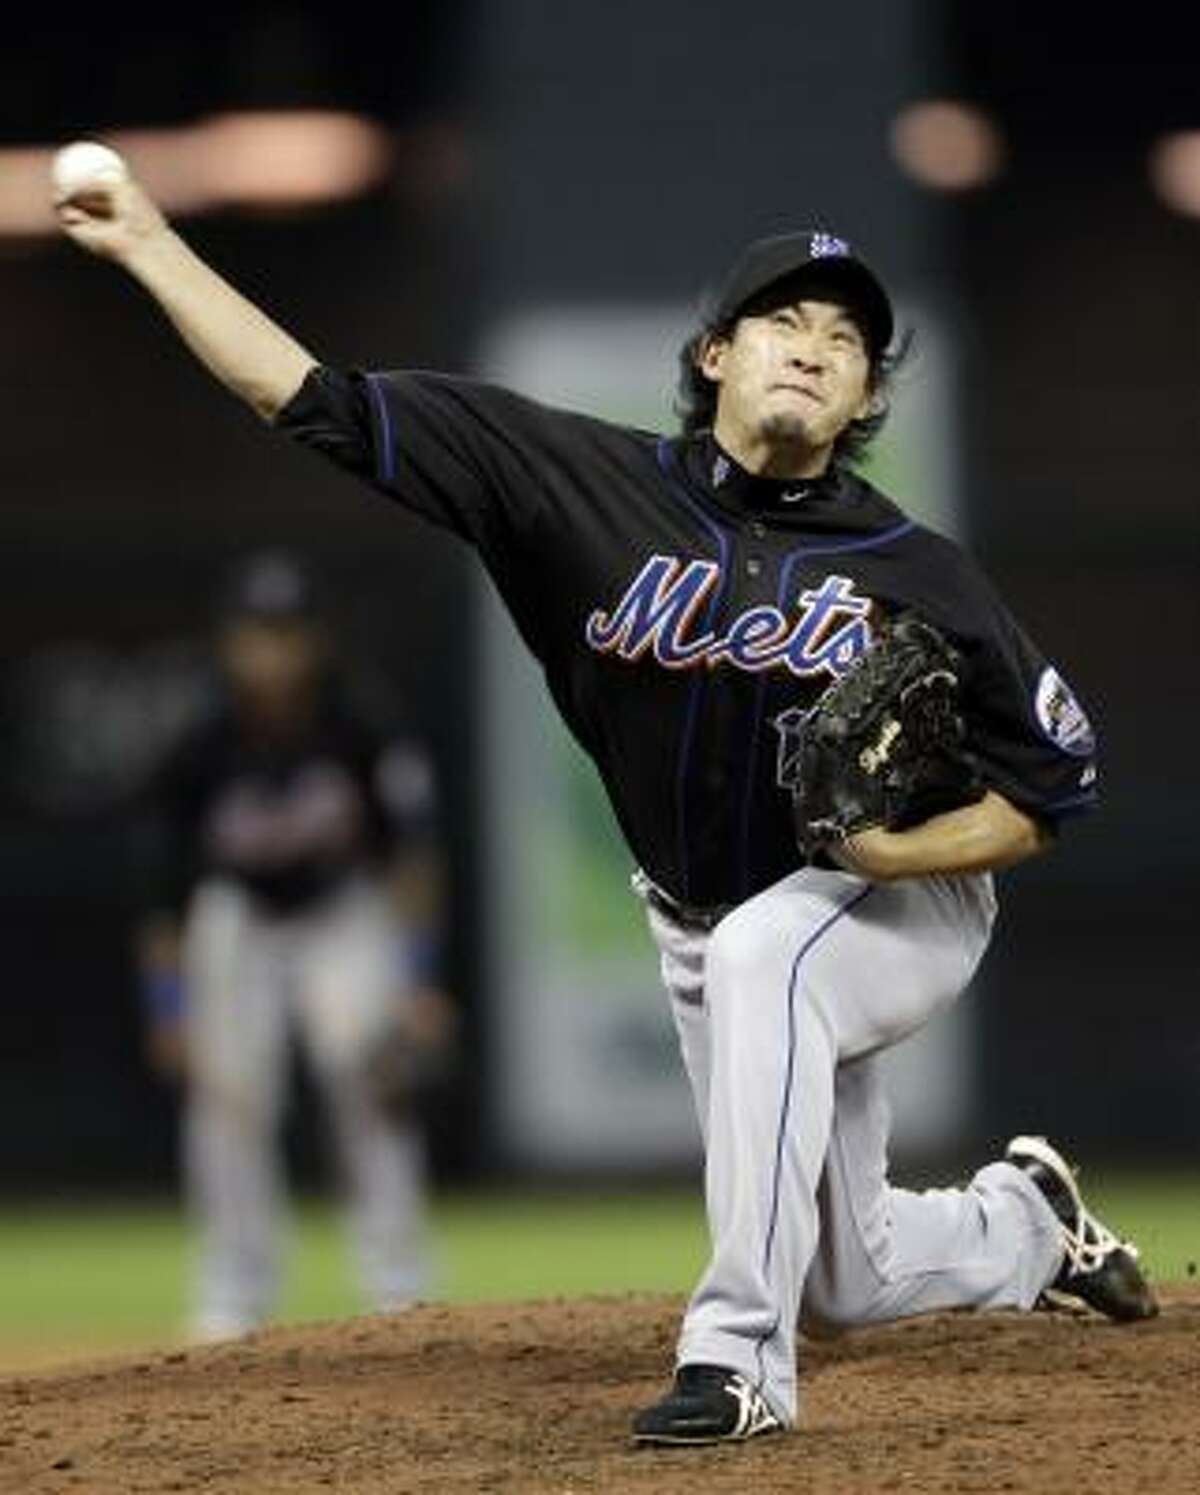 Mets reliever Ryota Igarashi delivers a pitch during the sixth inning.